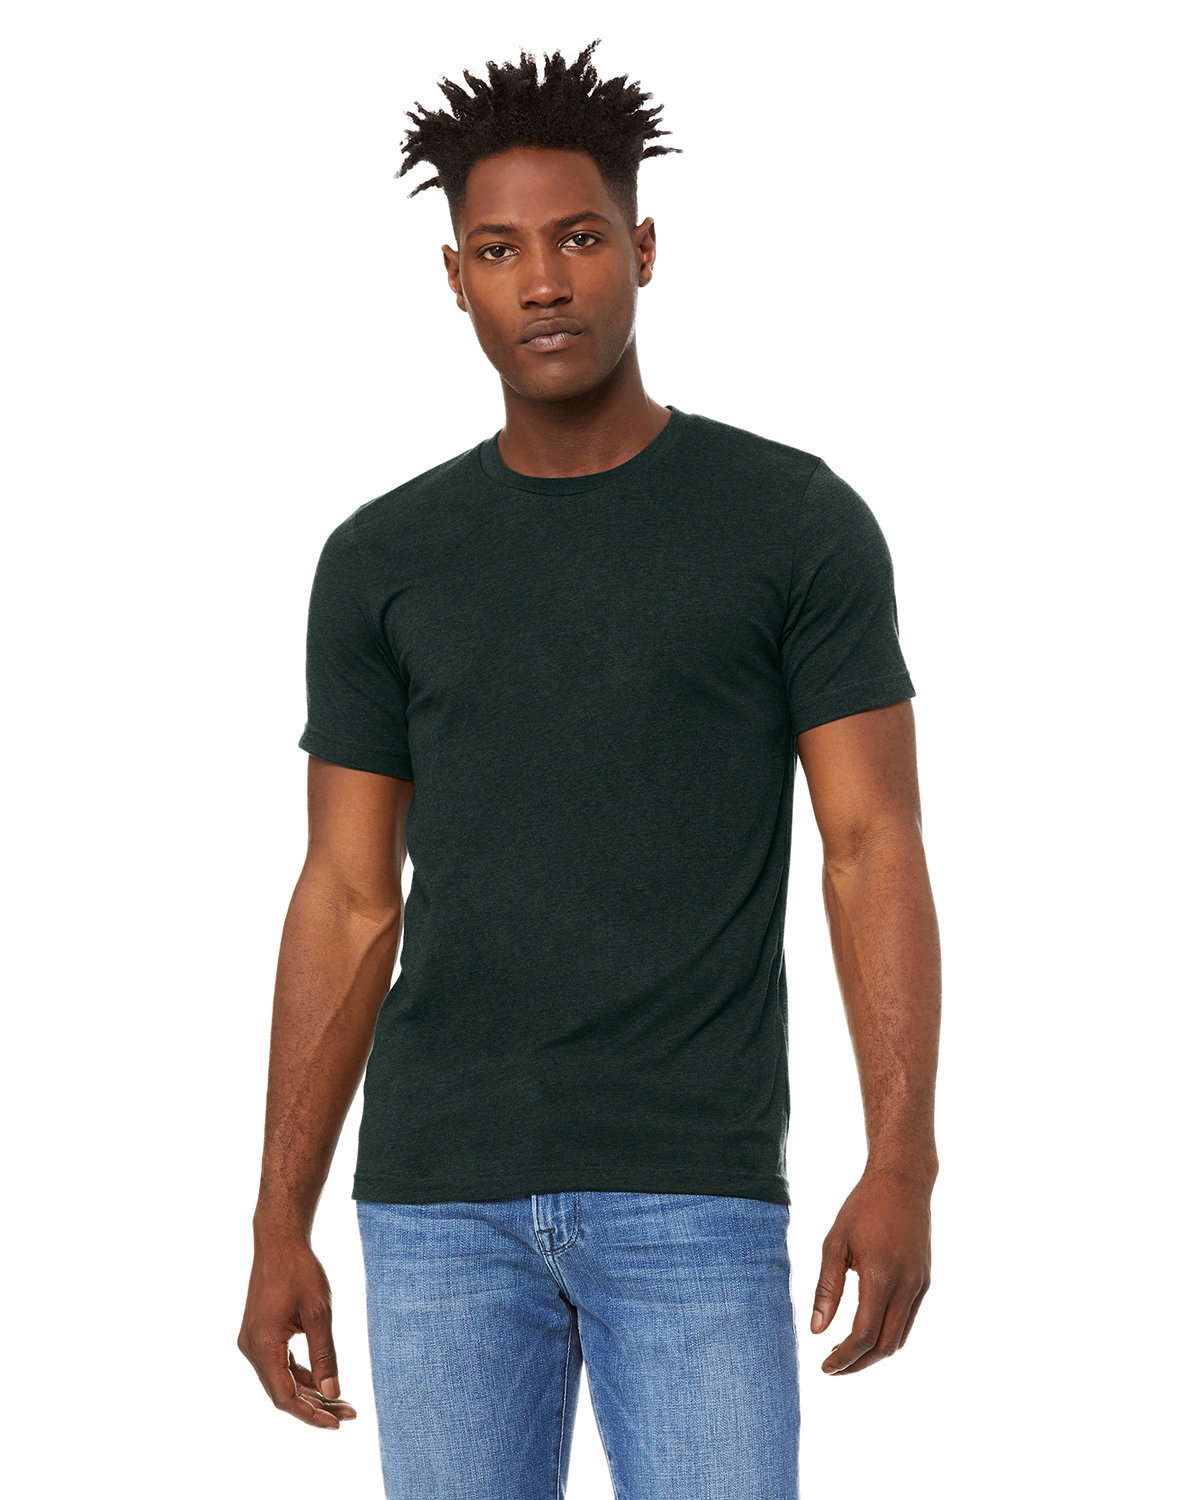 Bella + Canvas Unisex Heather CVC T-Shirt HEATHER EMERALD